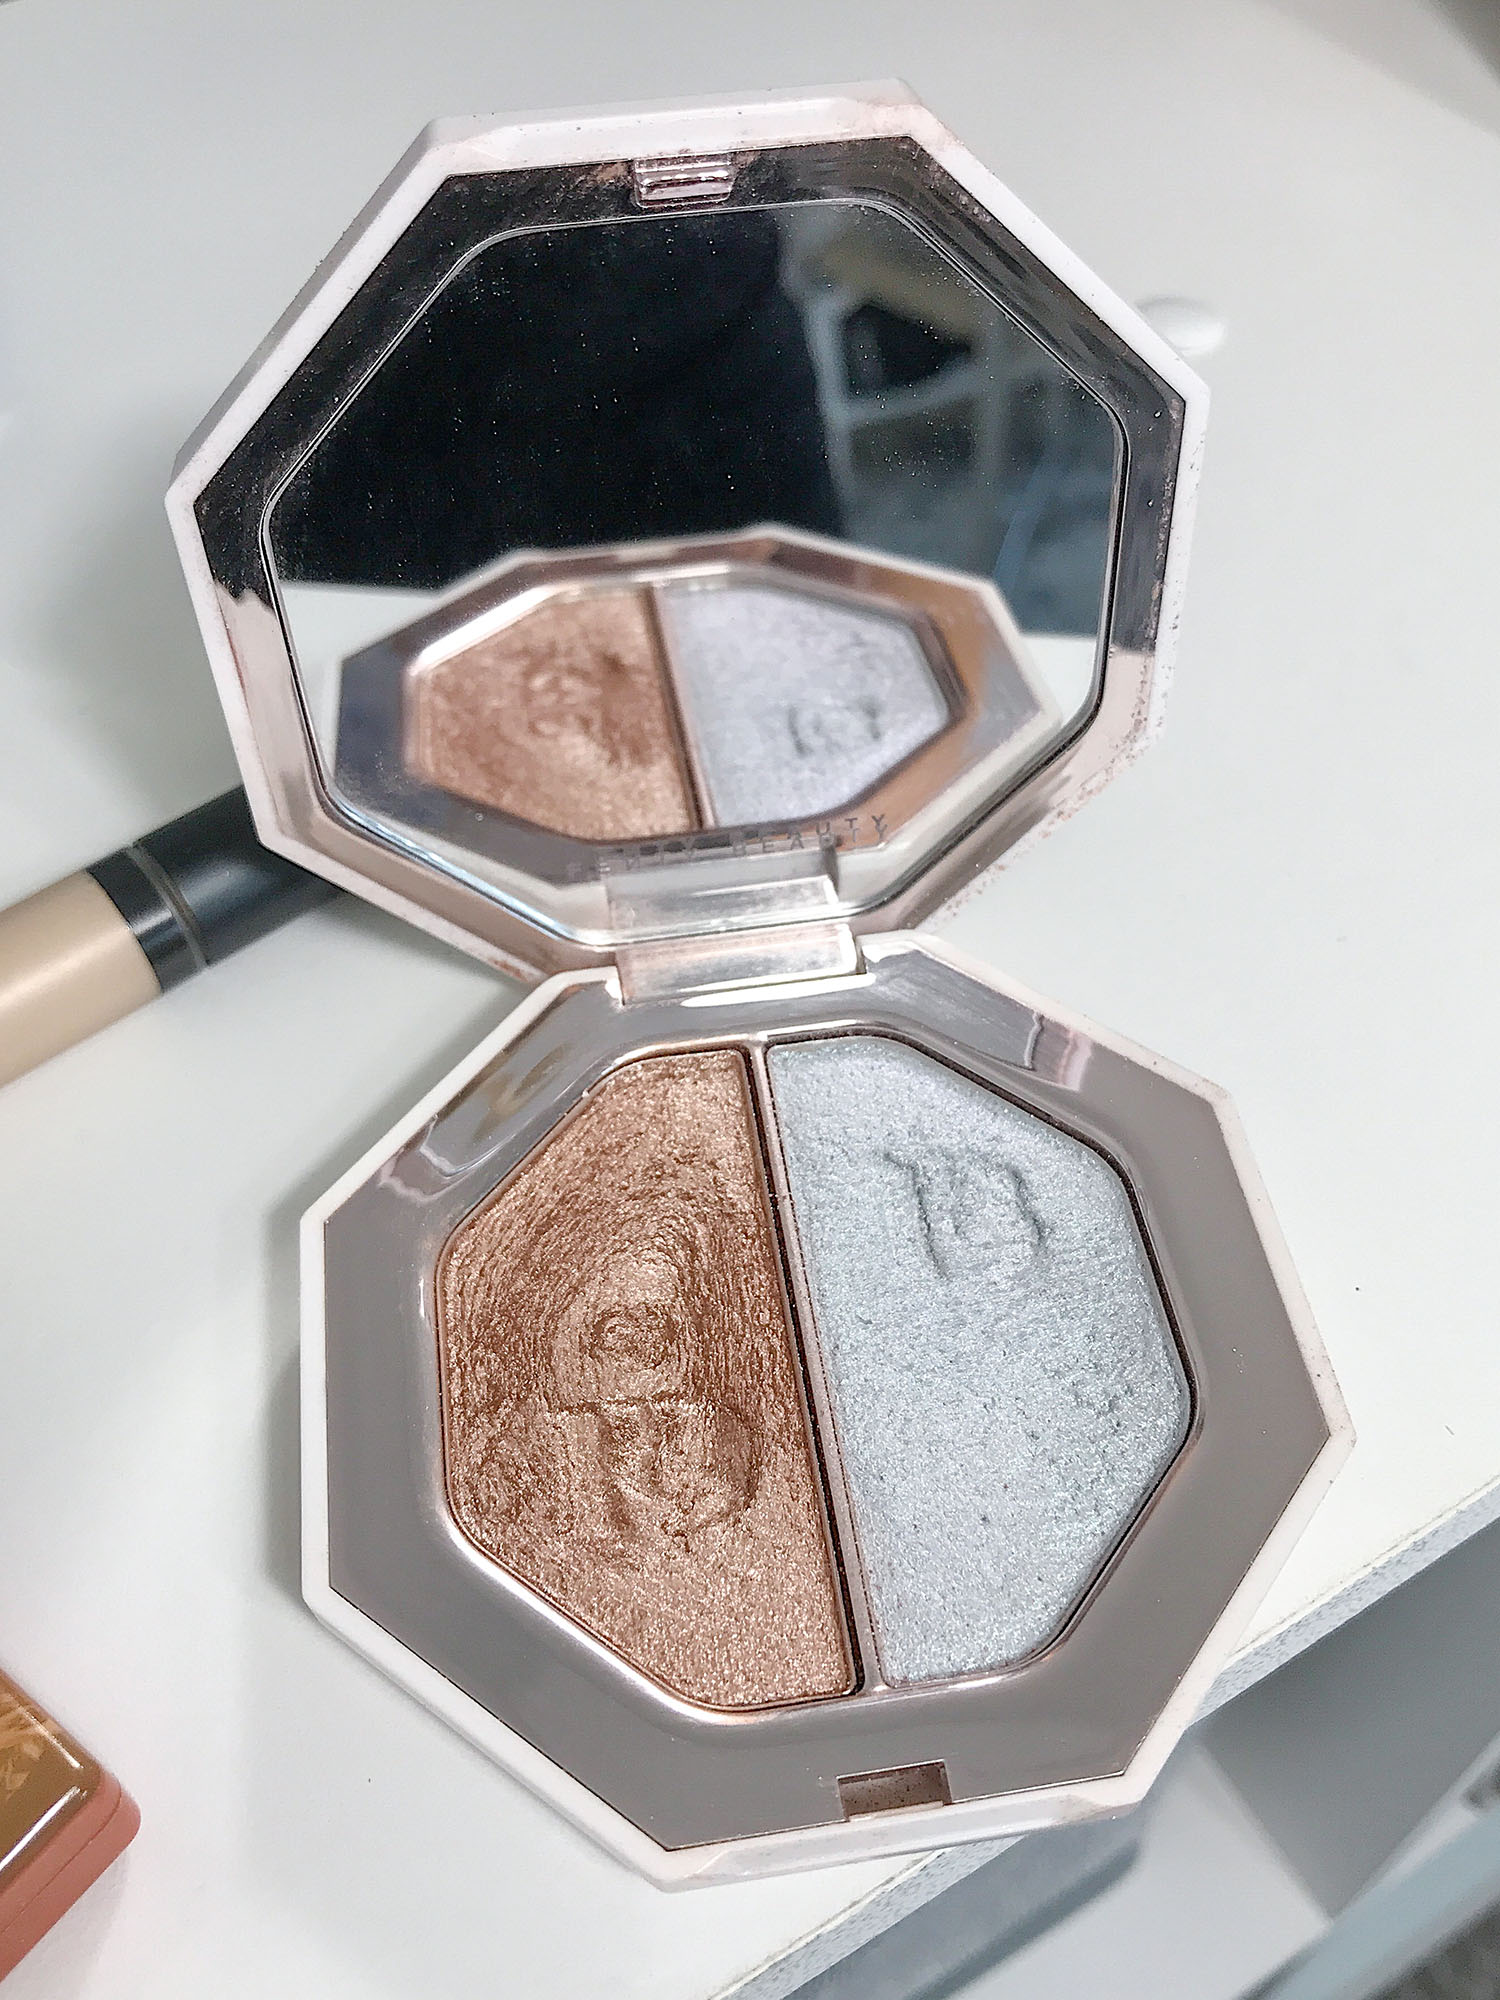 Fenty Beauty Killawatt Foil Highlighter | June 2018 Beauty Favorites